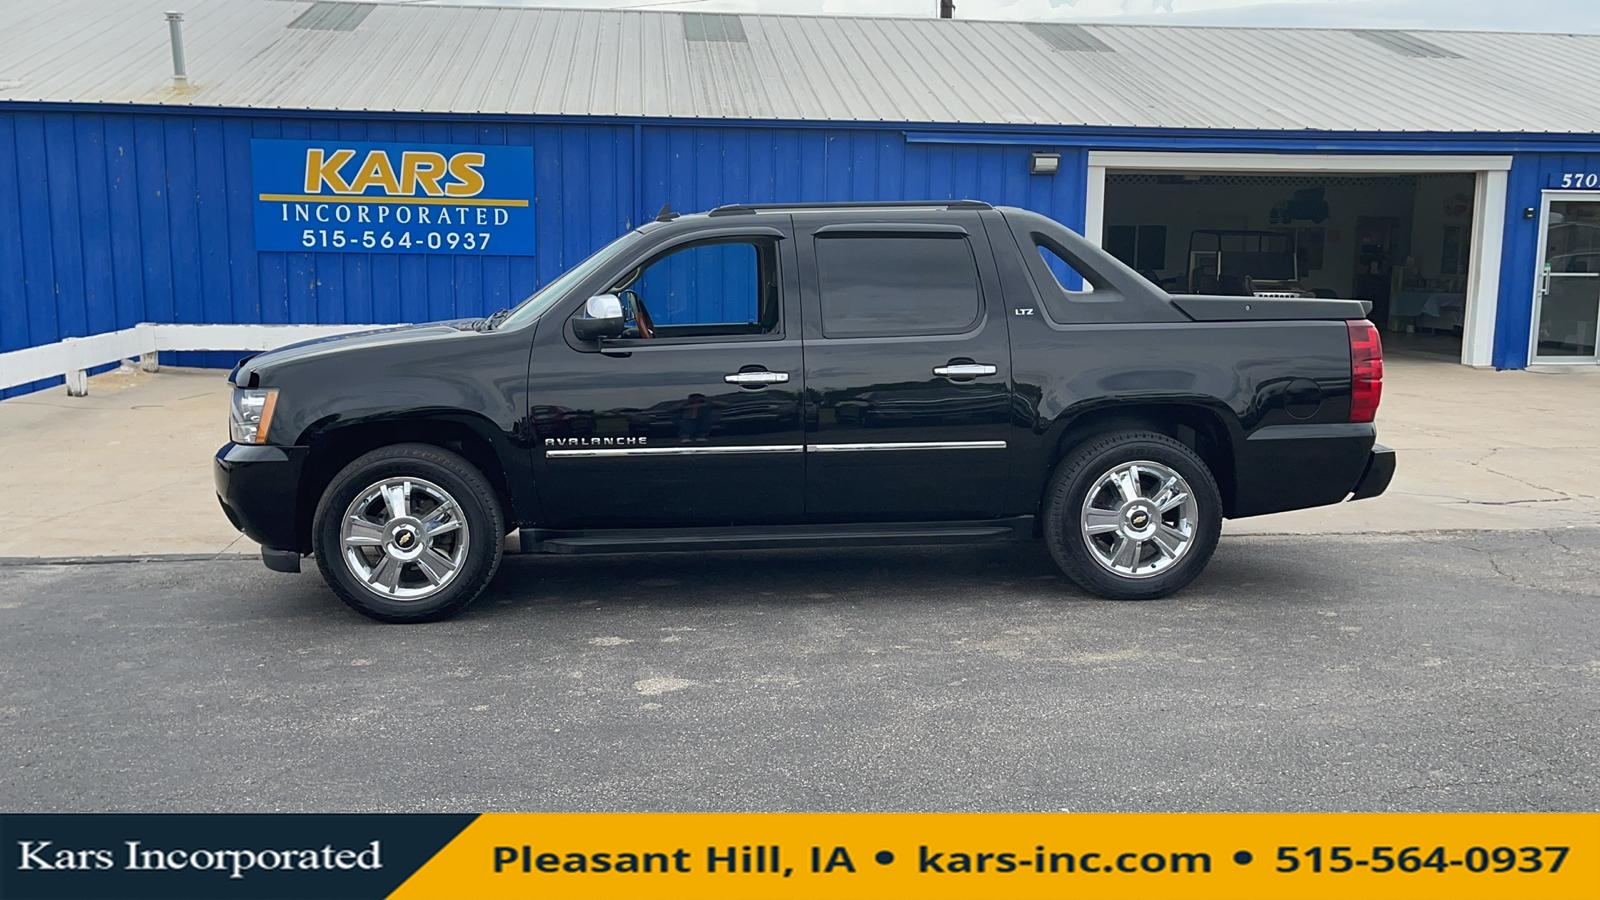 2010 Chevrolet Avalanche LTZ 4WD Crew Cab  - A28491P  - Kars Incorporated